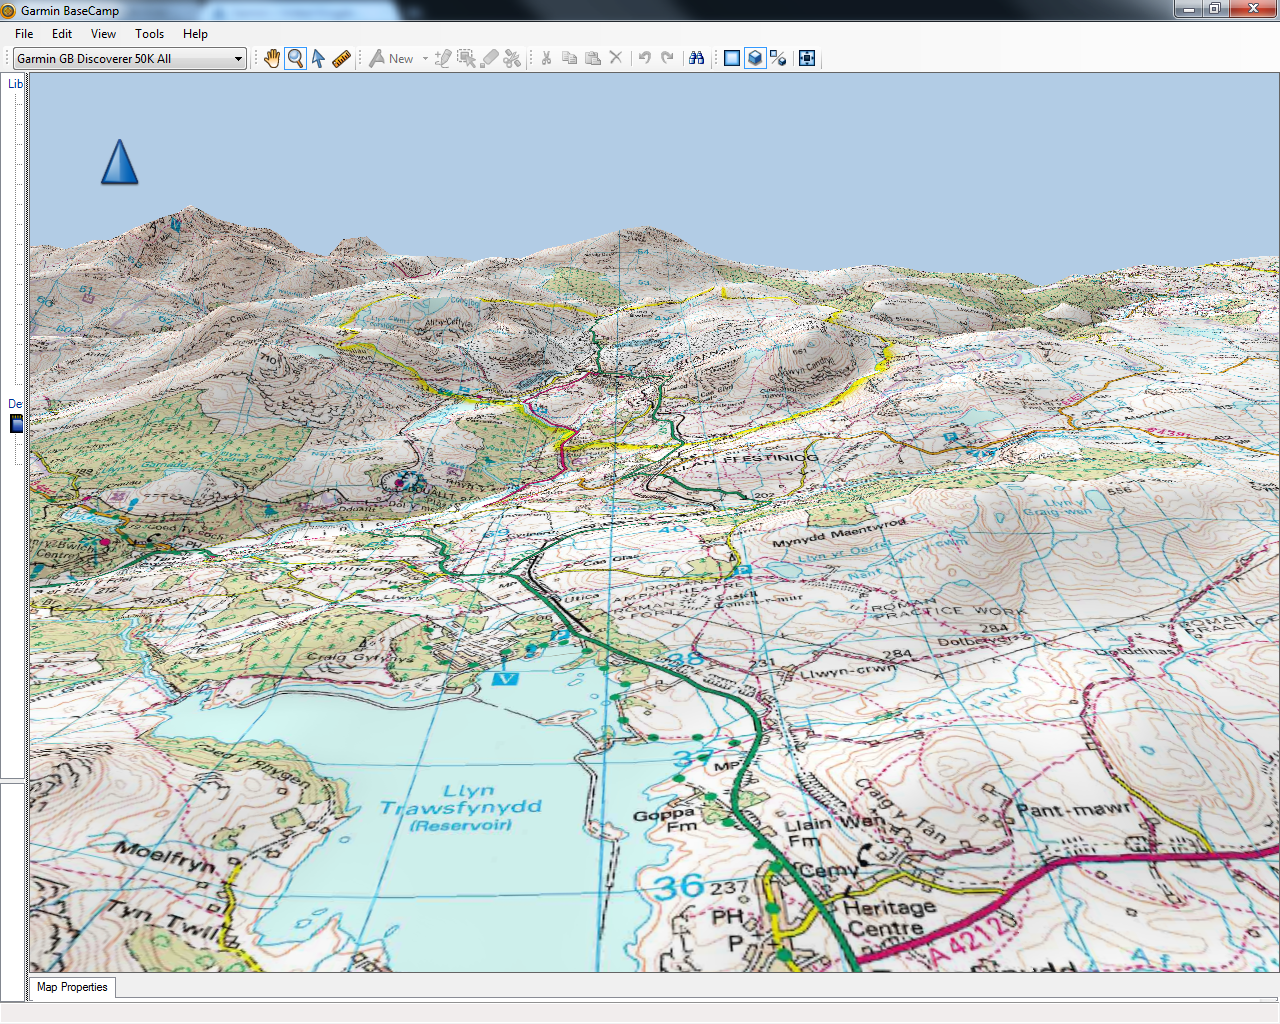 Garmin launches free basecamp route planning software garmin image002 gumiabroncs Images